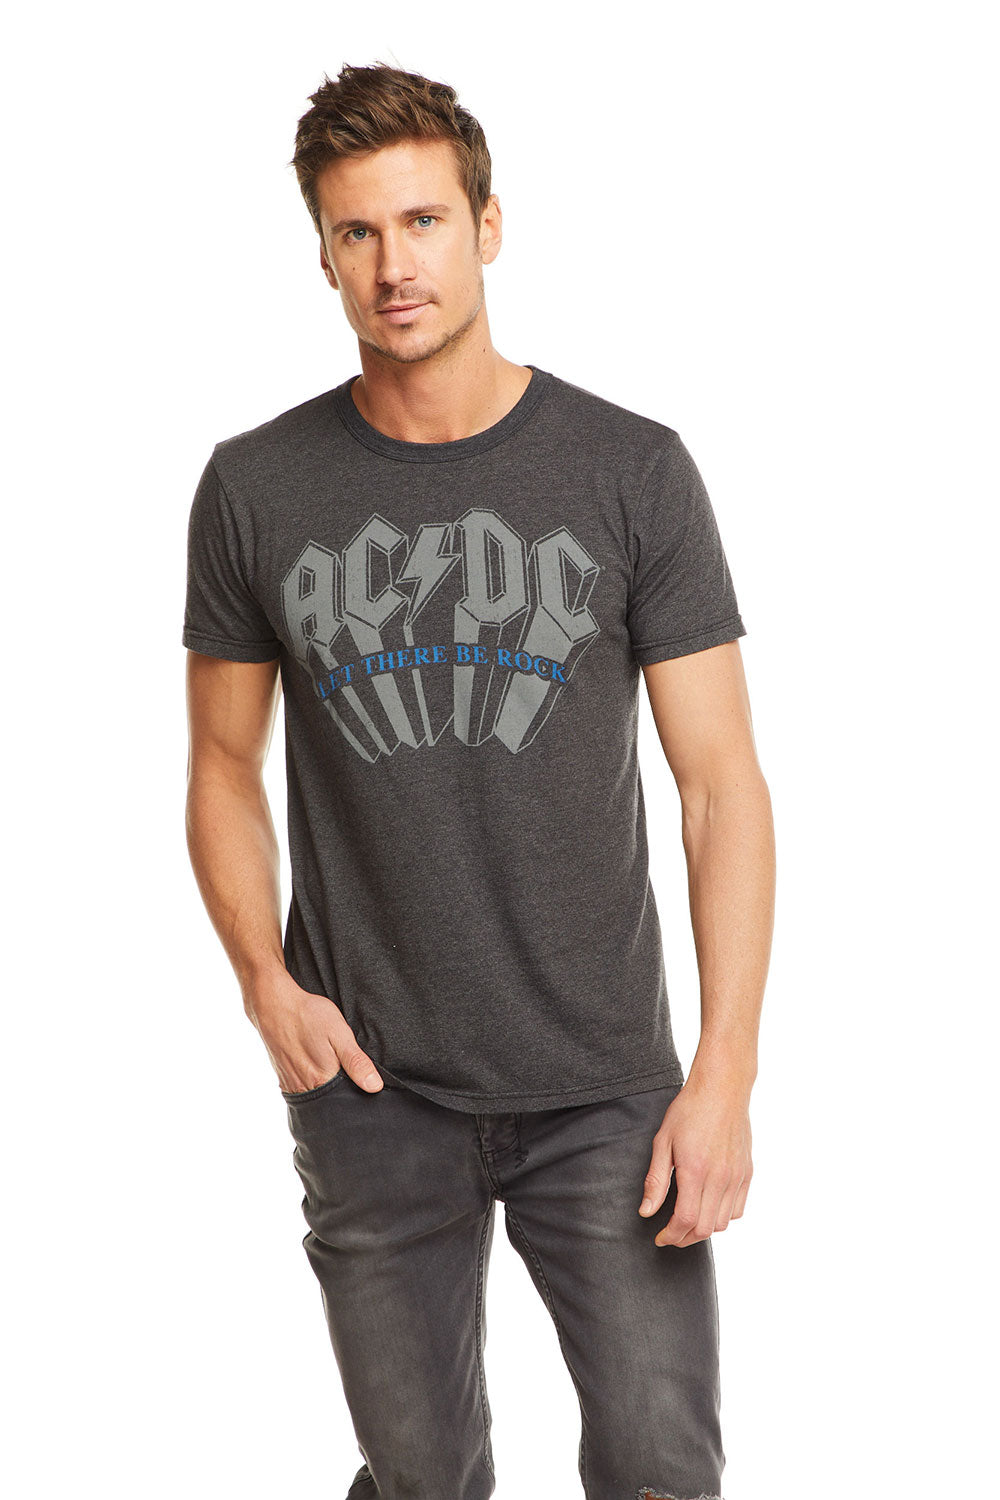 ACDC - Let There Be Rock, MENS, chaserbrand.com,chaser clothing,chaser apparel,chaser los angeles